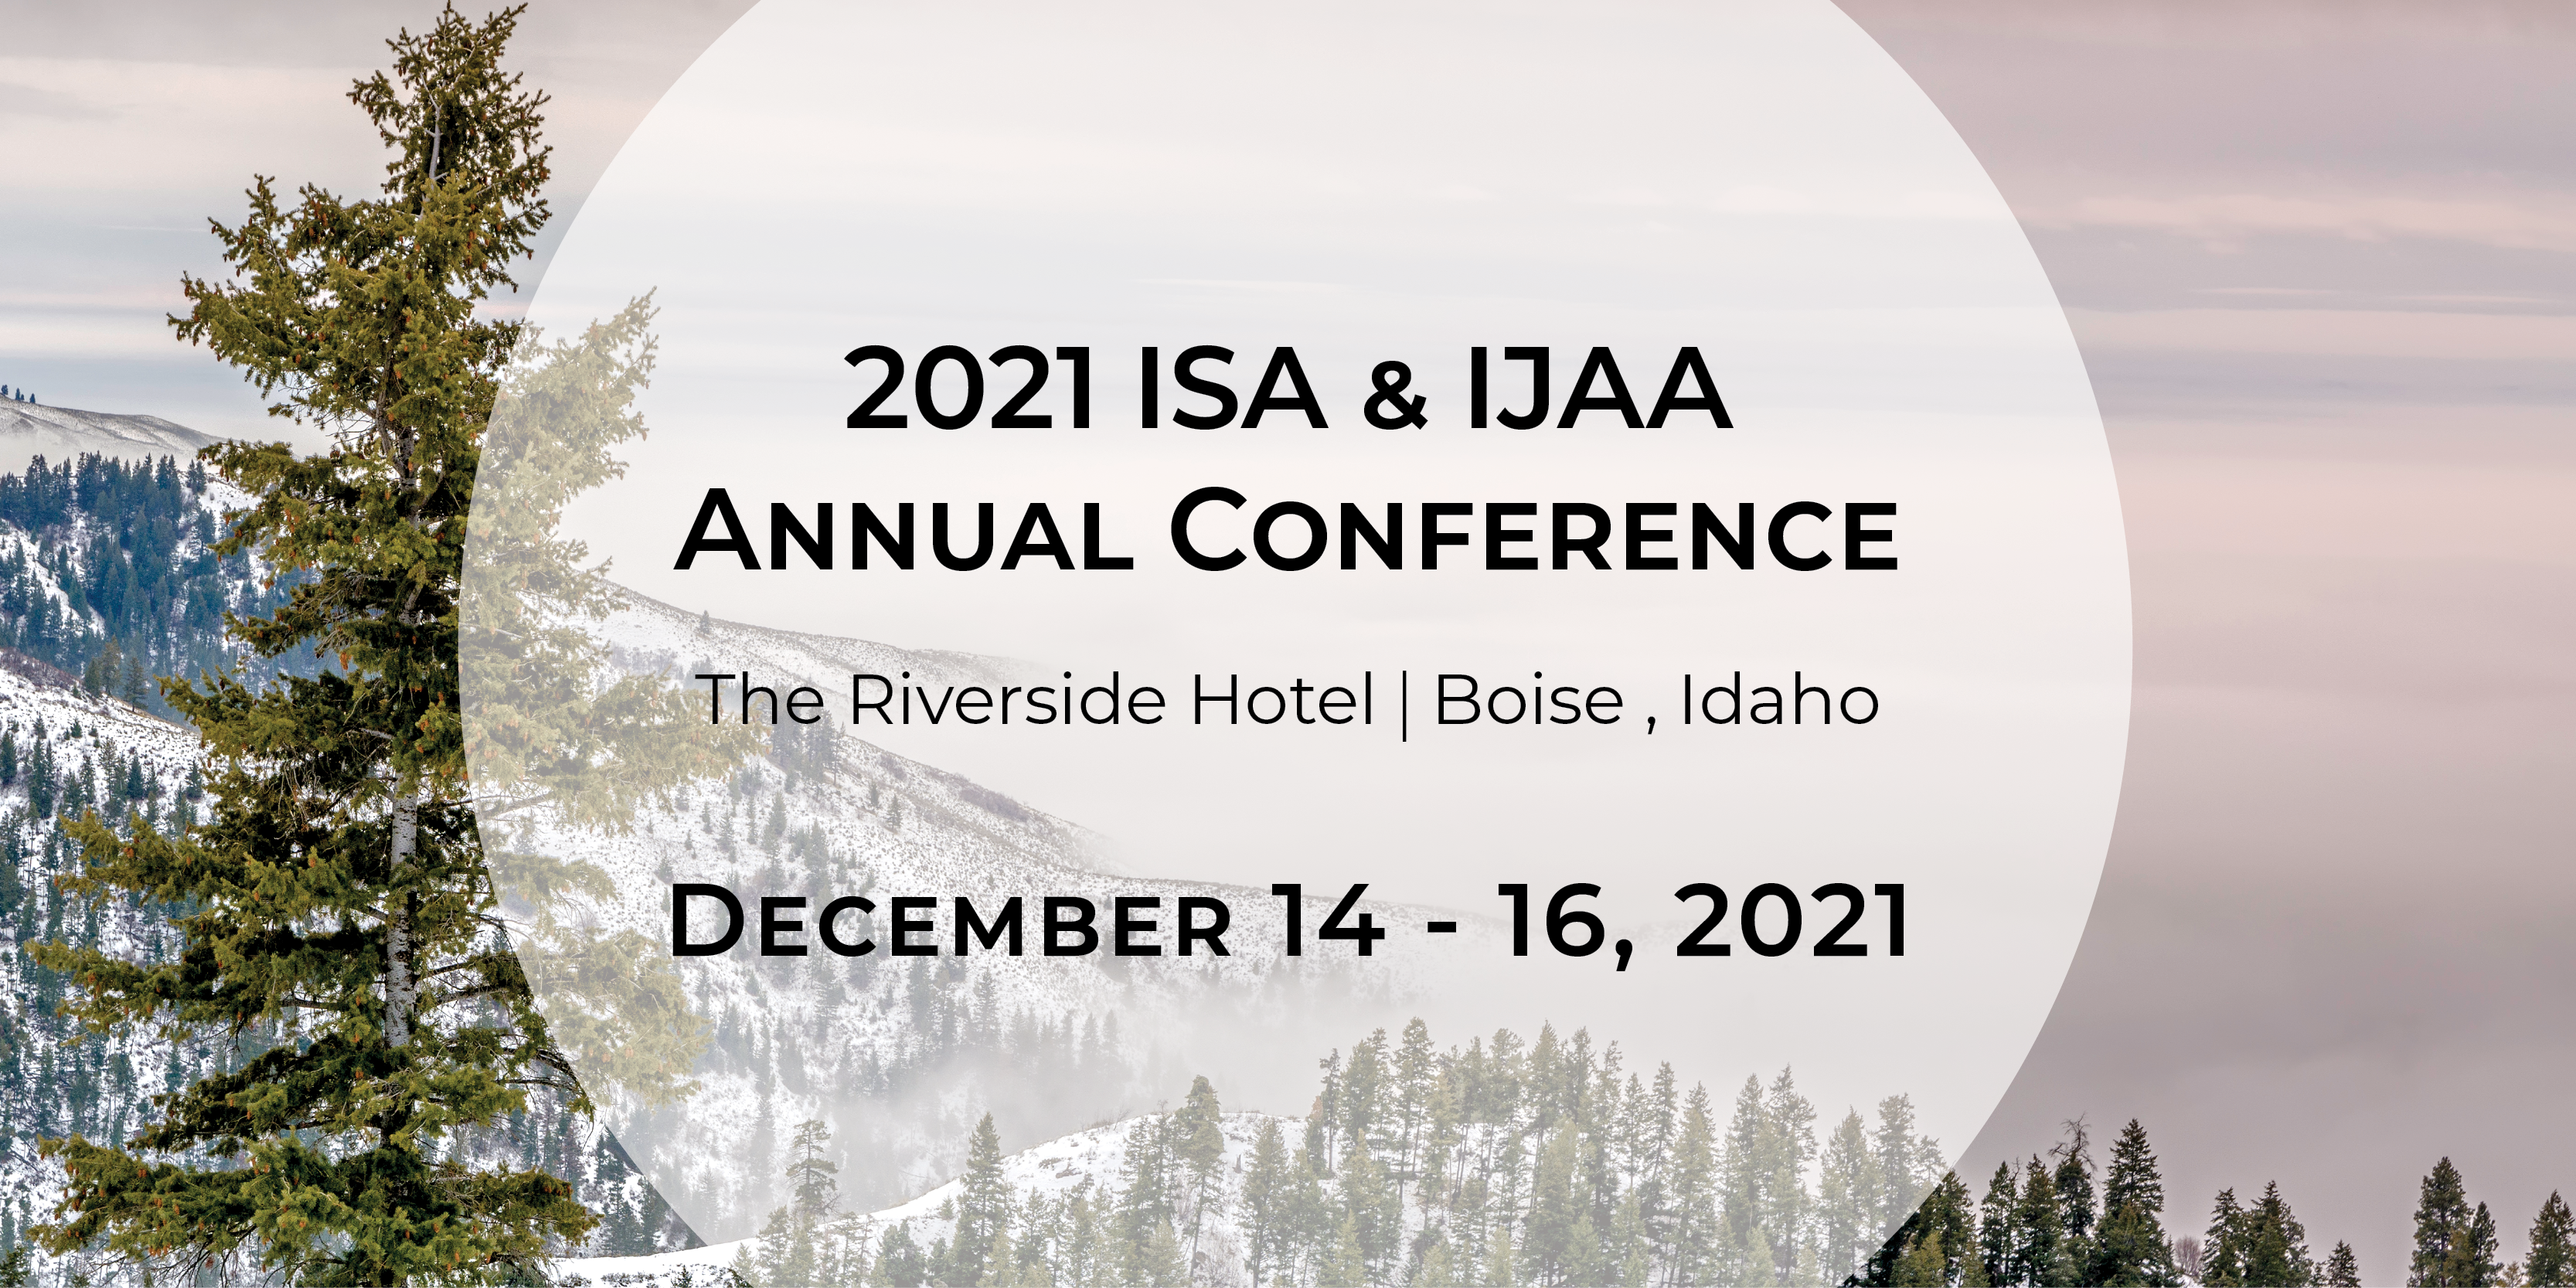 2021 ISA & IJAA Annual Conference